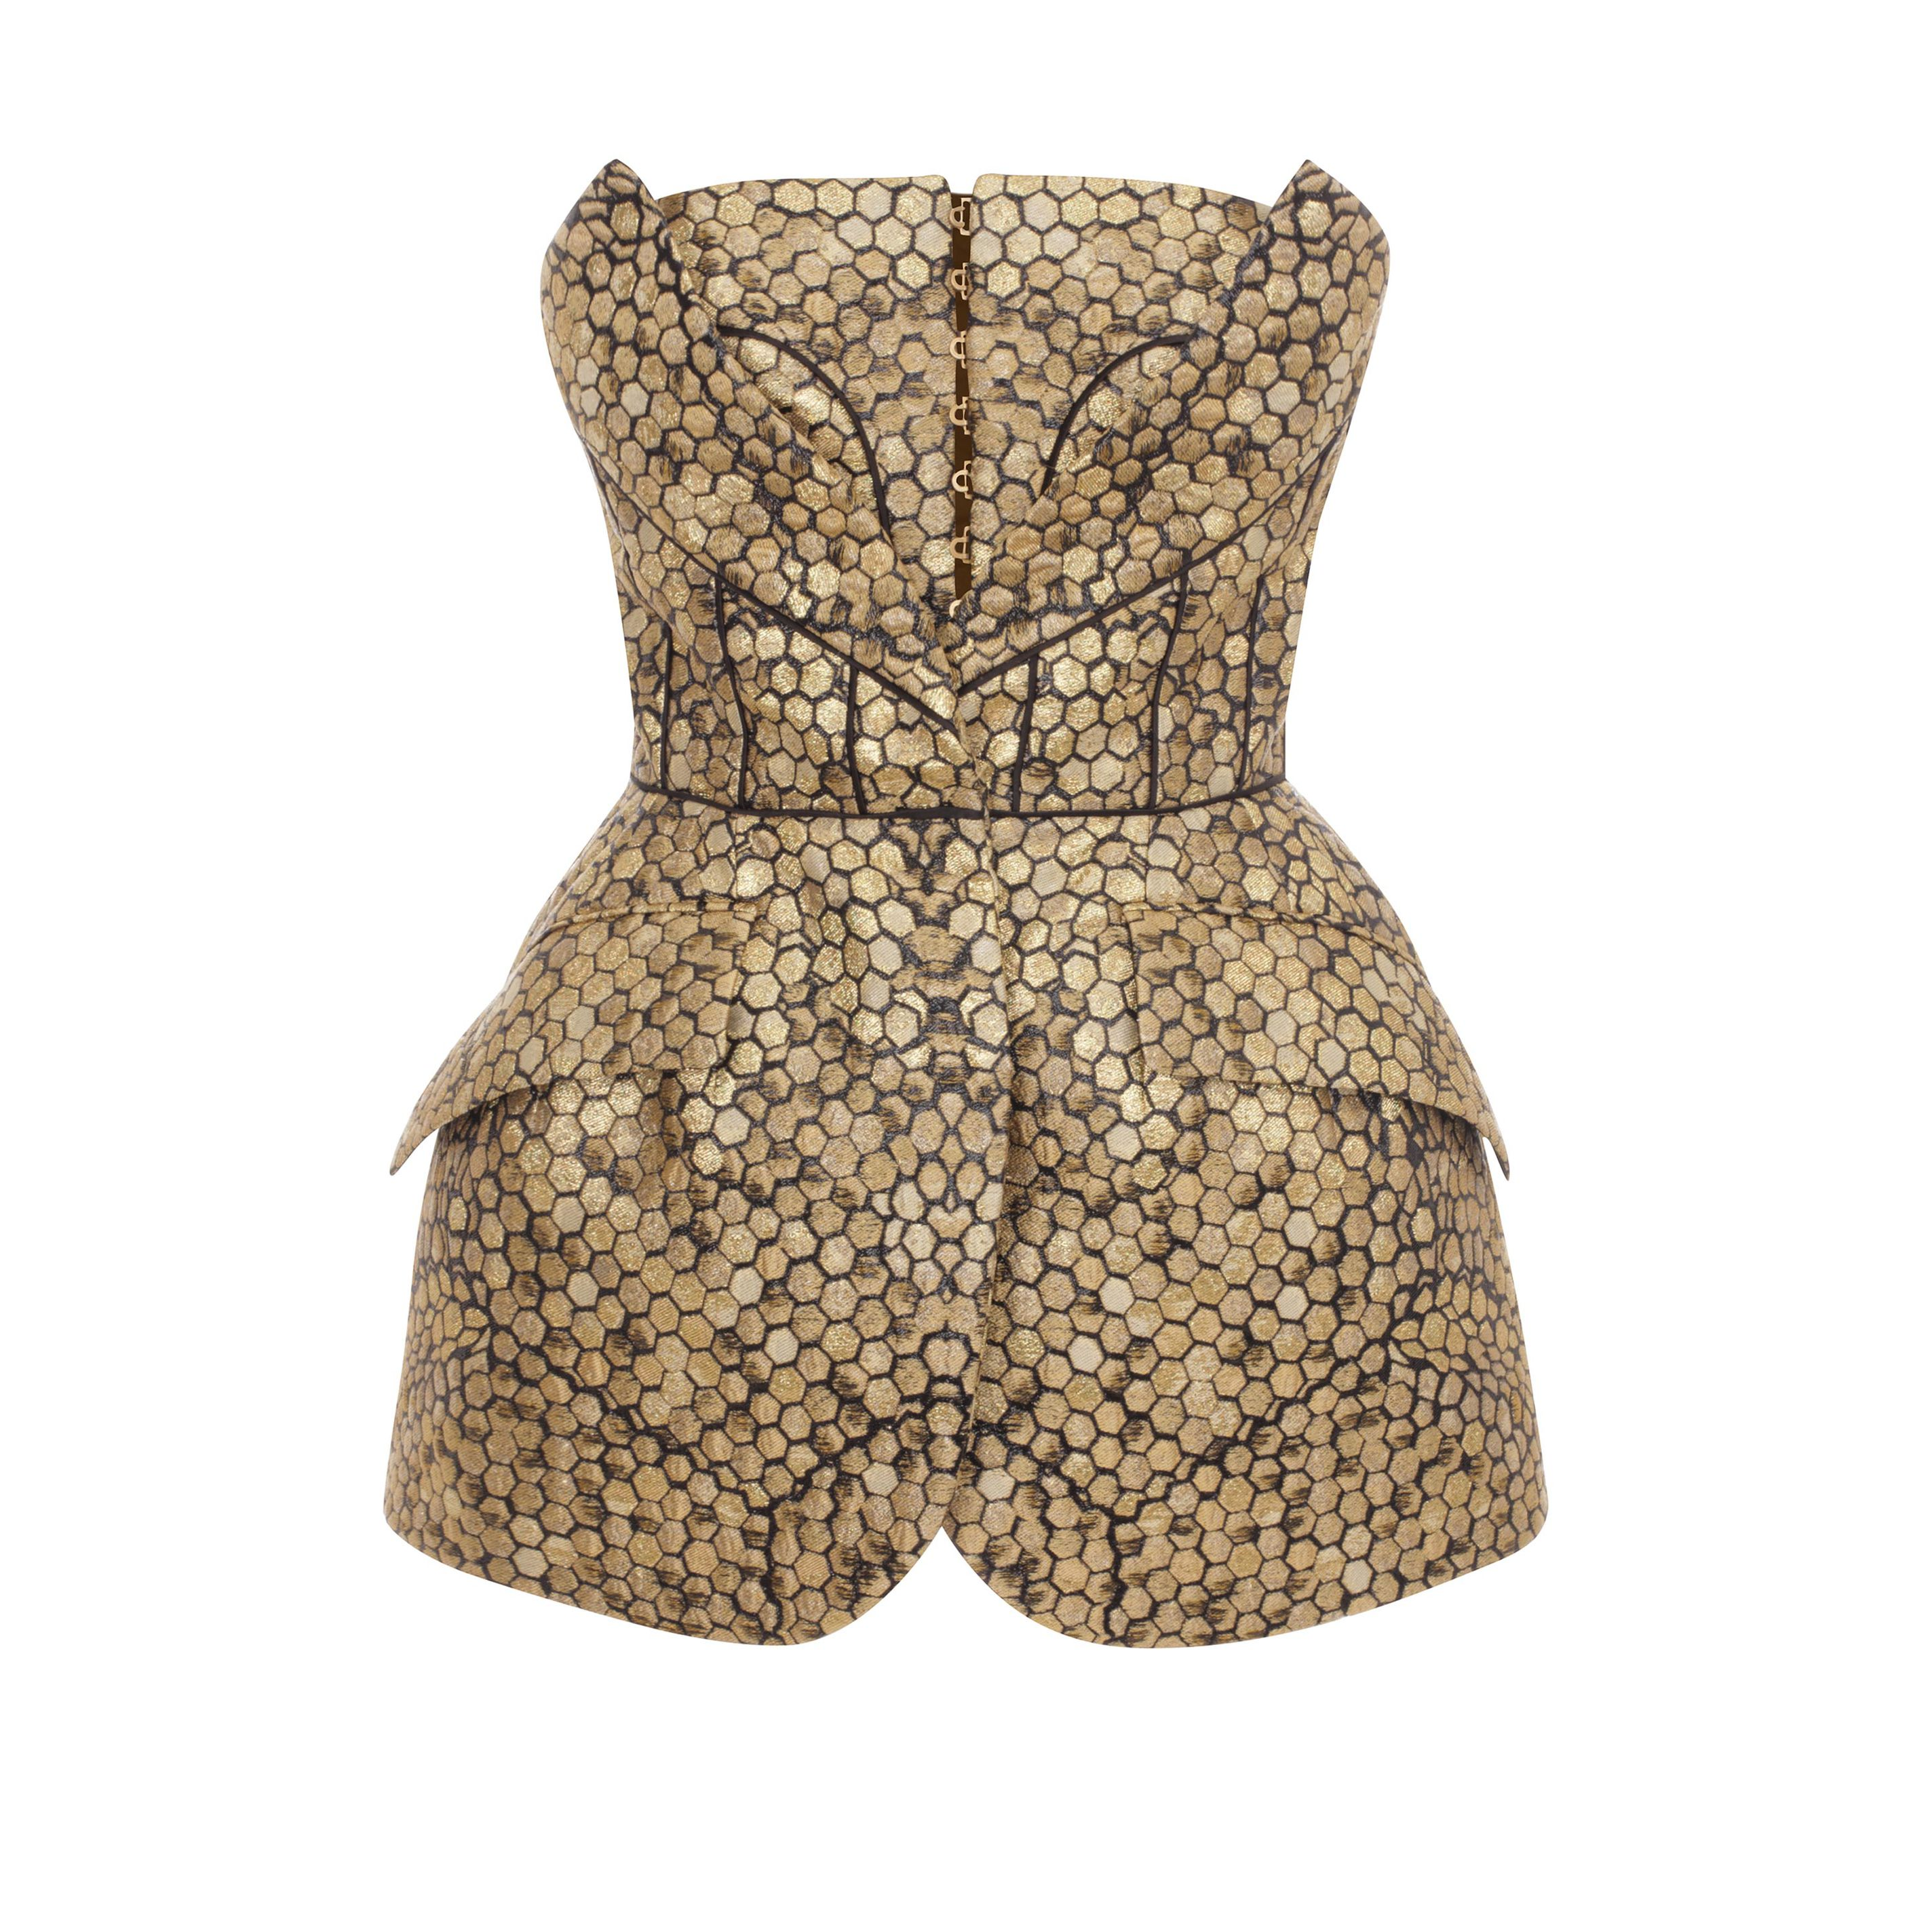 Bee Honeycomb Bombe Hip Bustier Alexander McQueen | Silk Top | Tops Knitwear |